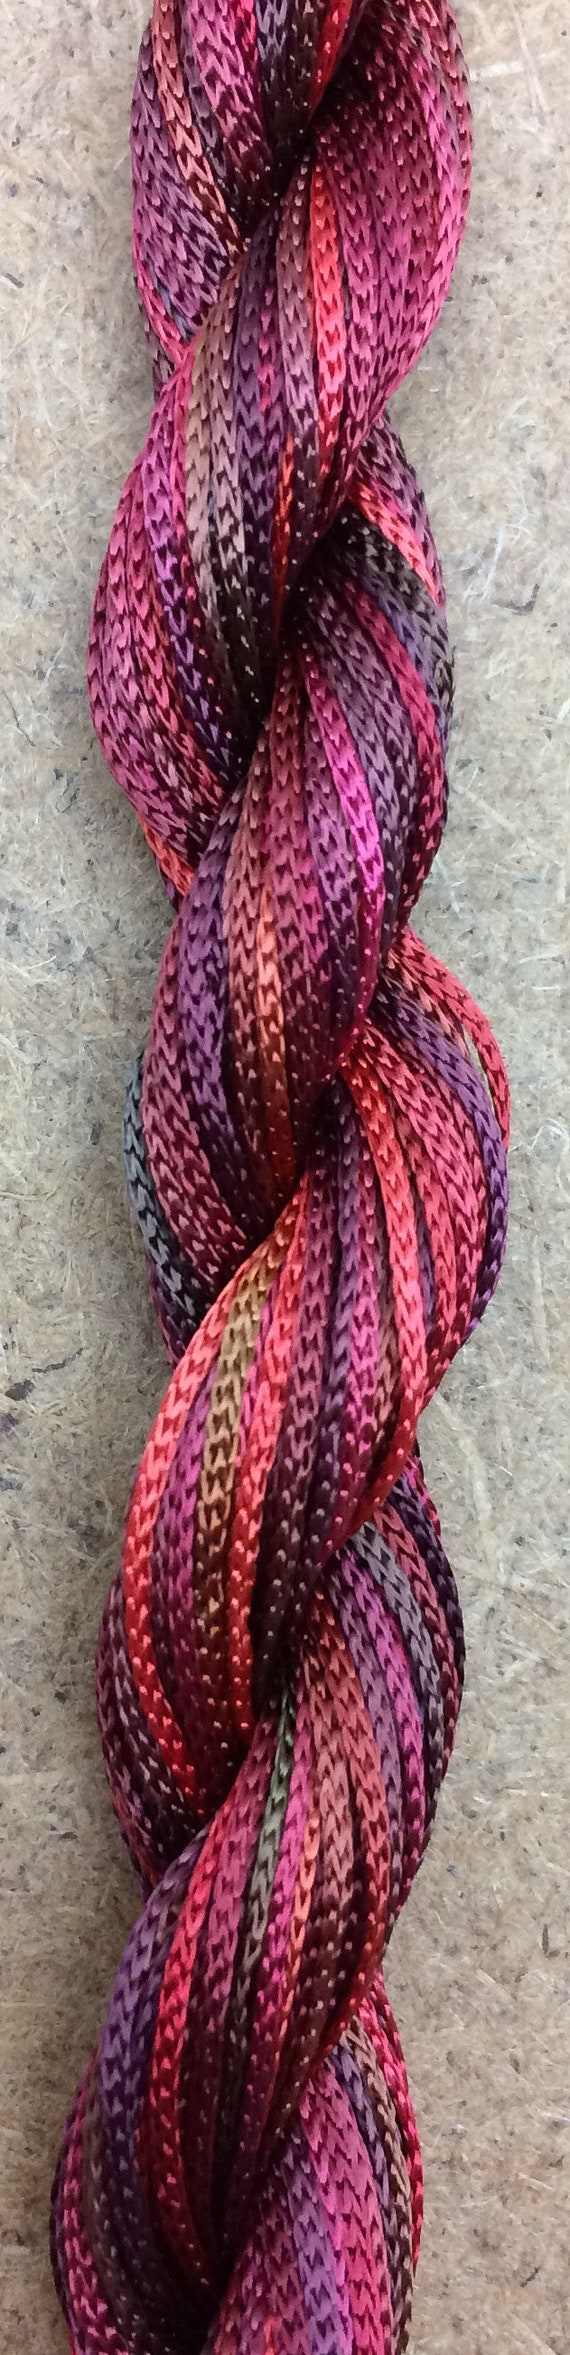 25 metres Viscose Chainette 4167 Hand Dyed Thread Rayon Ribbon Colour No.12 Terra Cotta